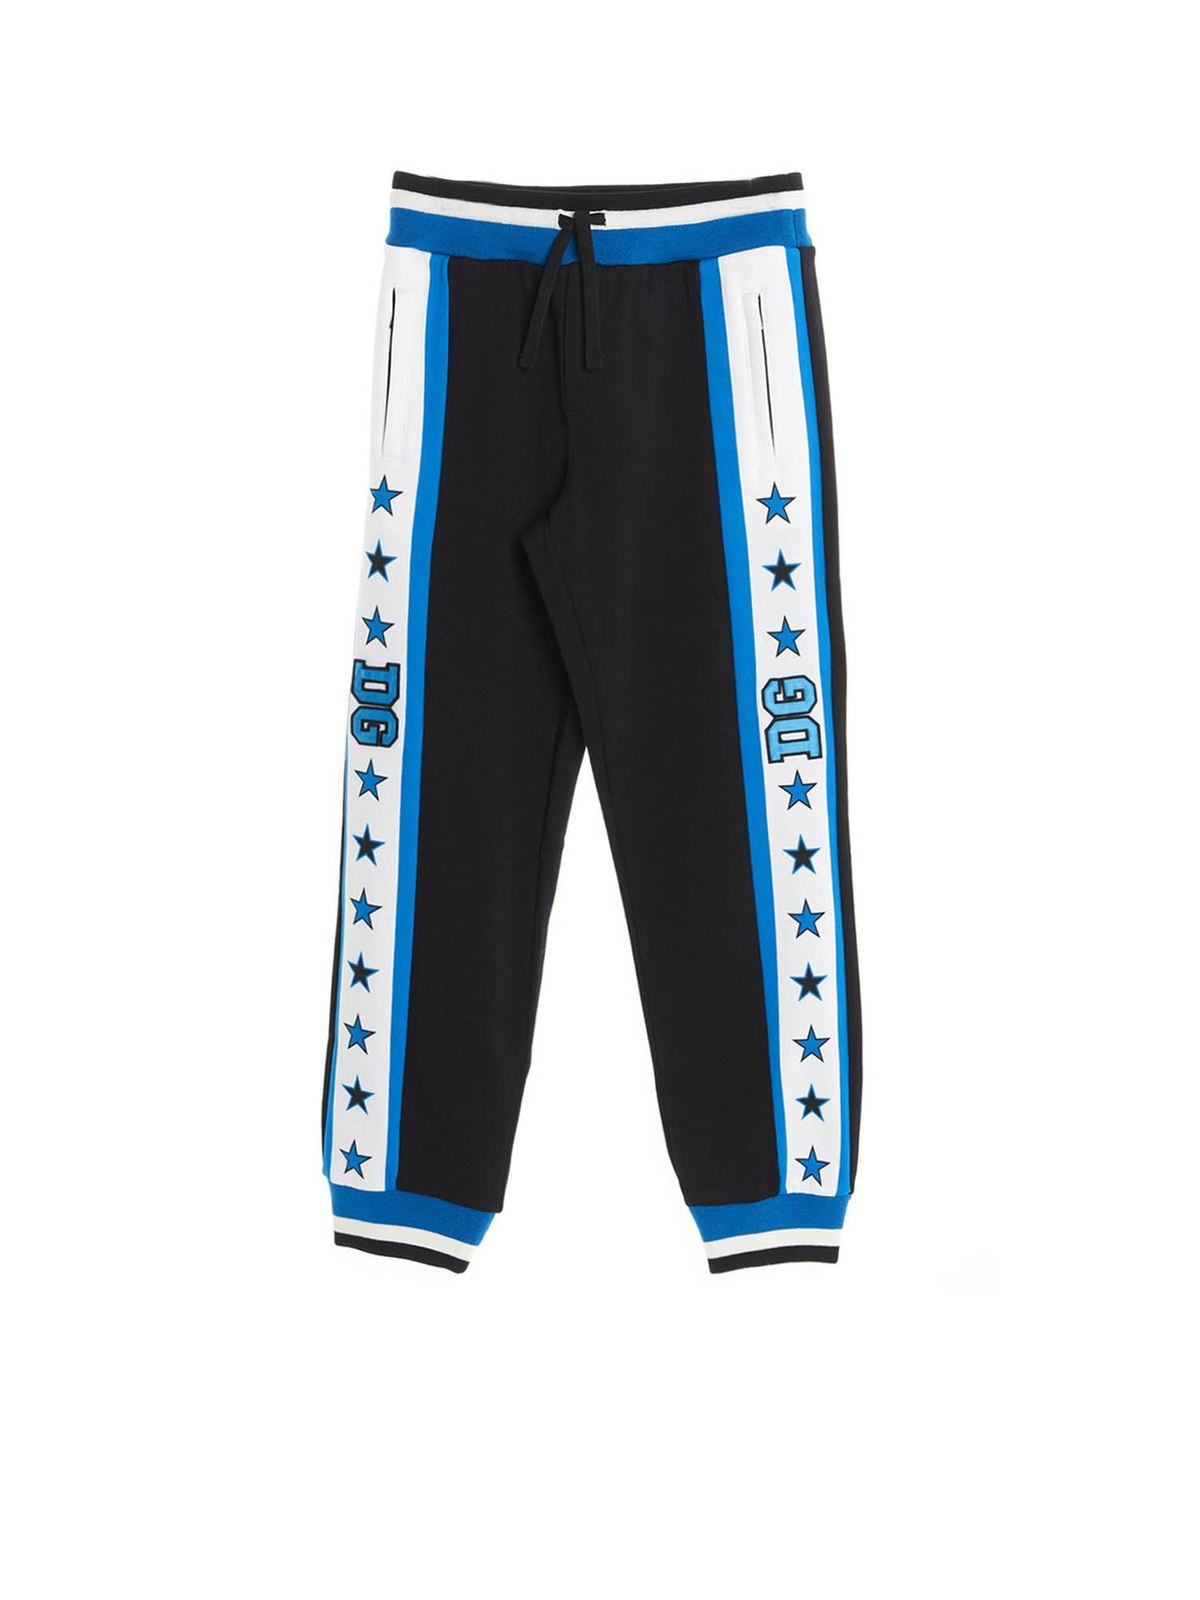 DOLCE & GABBANA JR DG STARS PANTS IN BLUE AND BLACK